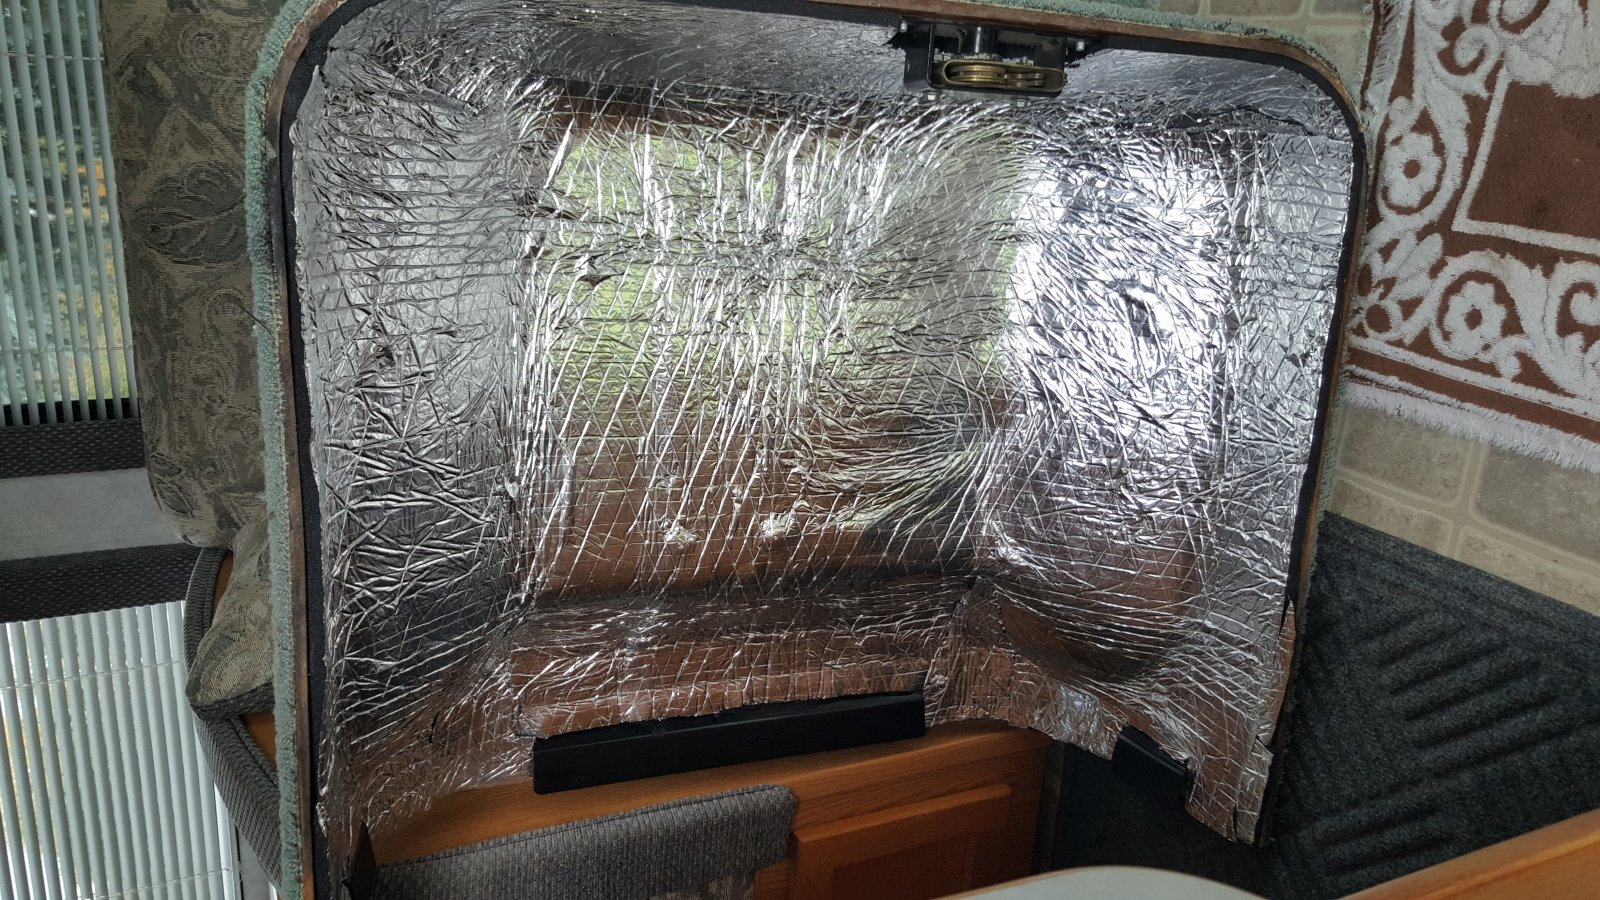 Click image for larger version  Name:MH Heat shield.jpg Views:16 Size:455.8 KB ID:222243